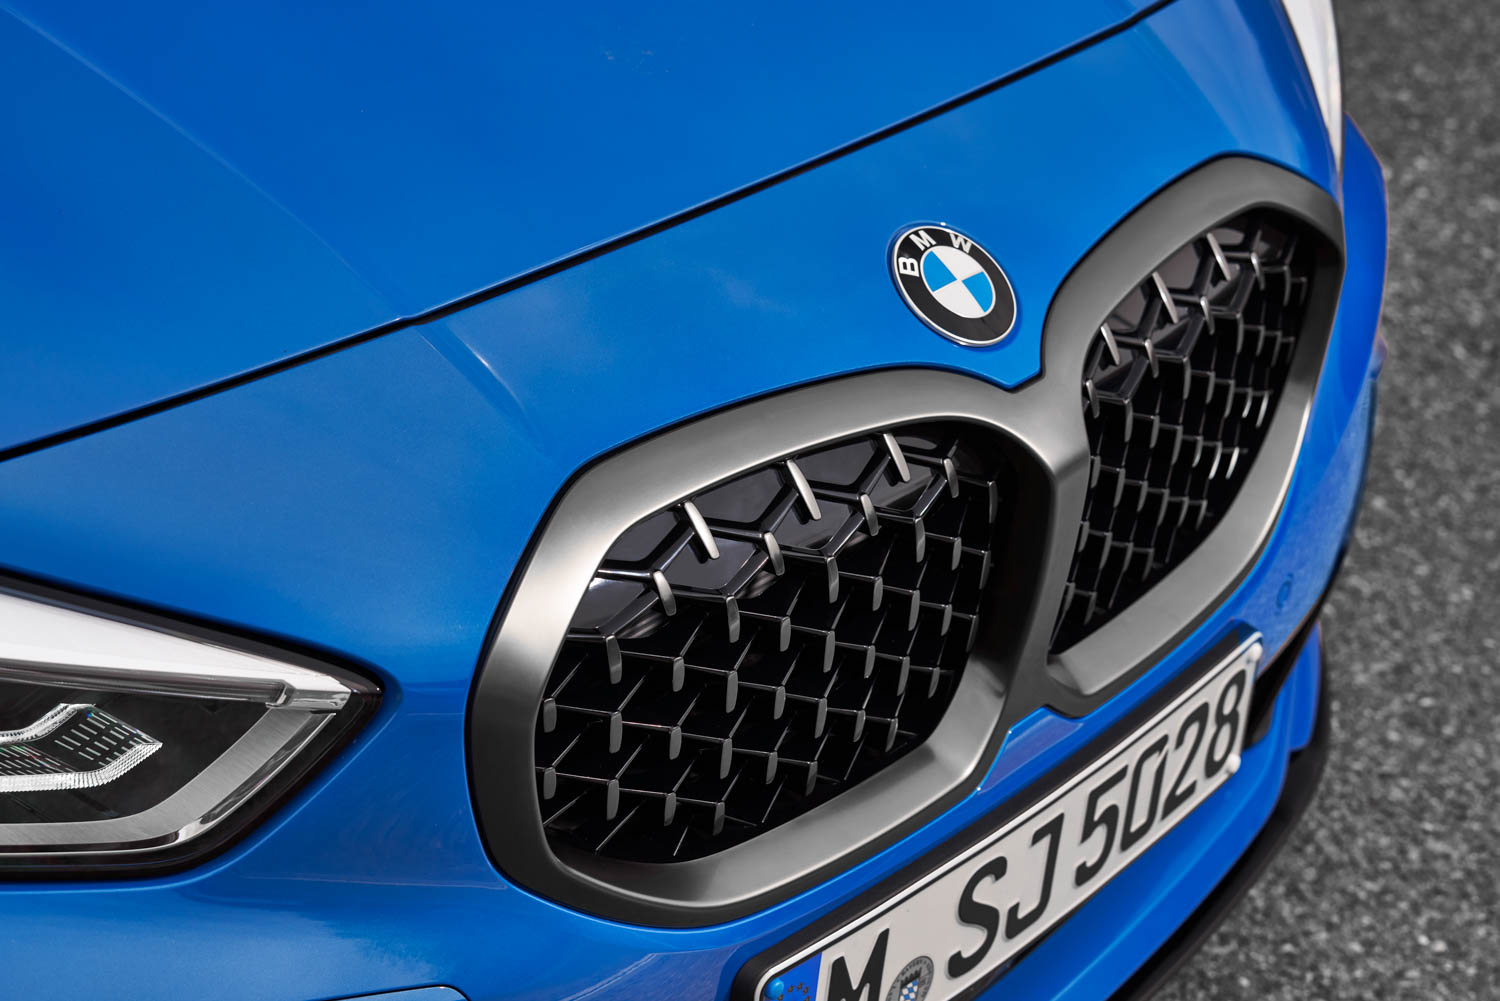 BMW 1 Series grille detail